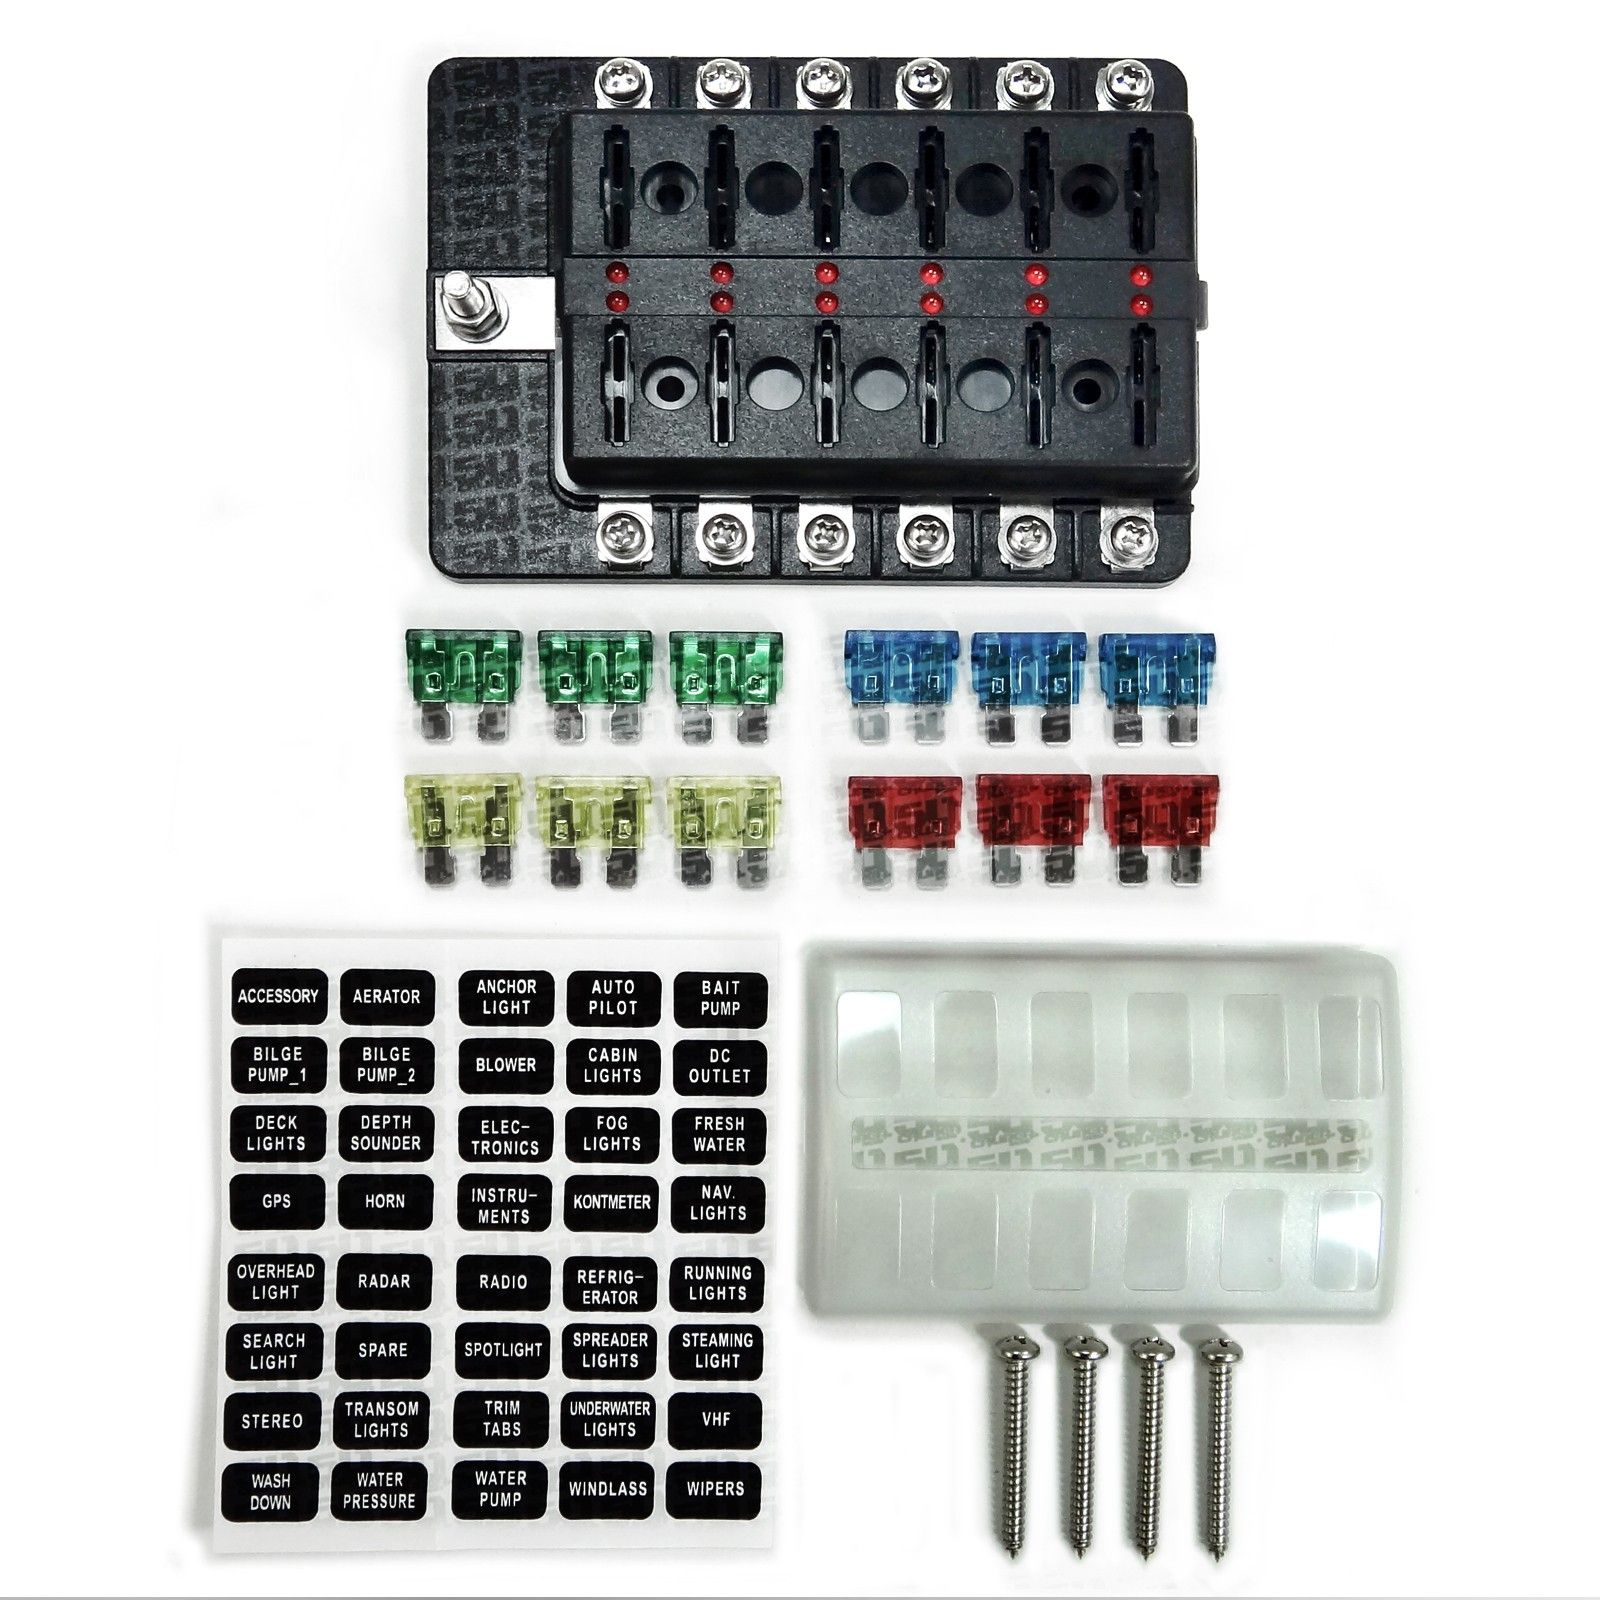 Wheel Spacers For Trucks >> Universal 12 Way Covered 12V Circuit Blade Fuse Box with ...